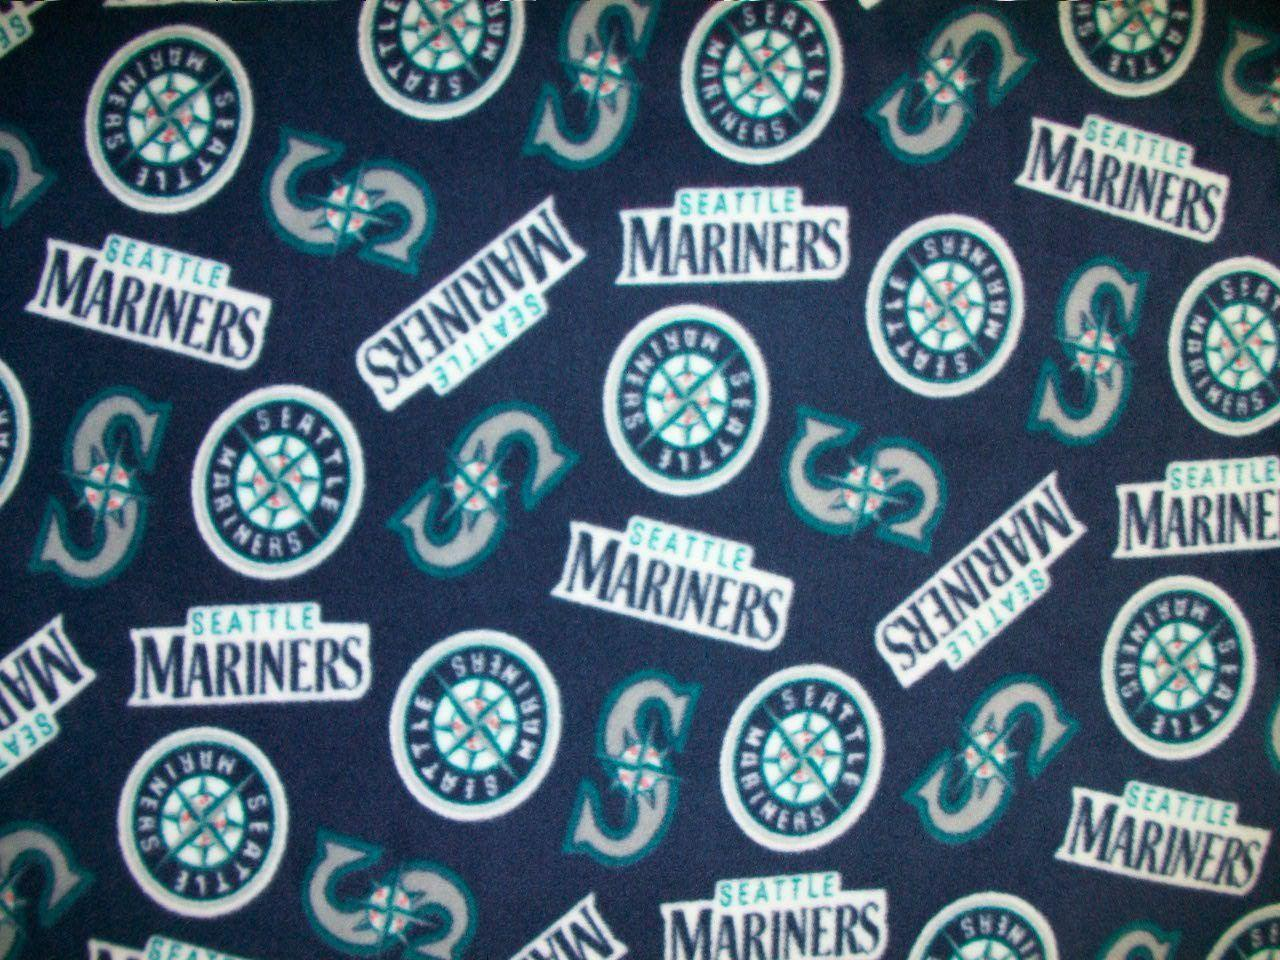 Seattle Mariners Wallpapers 2015